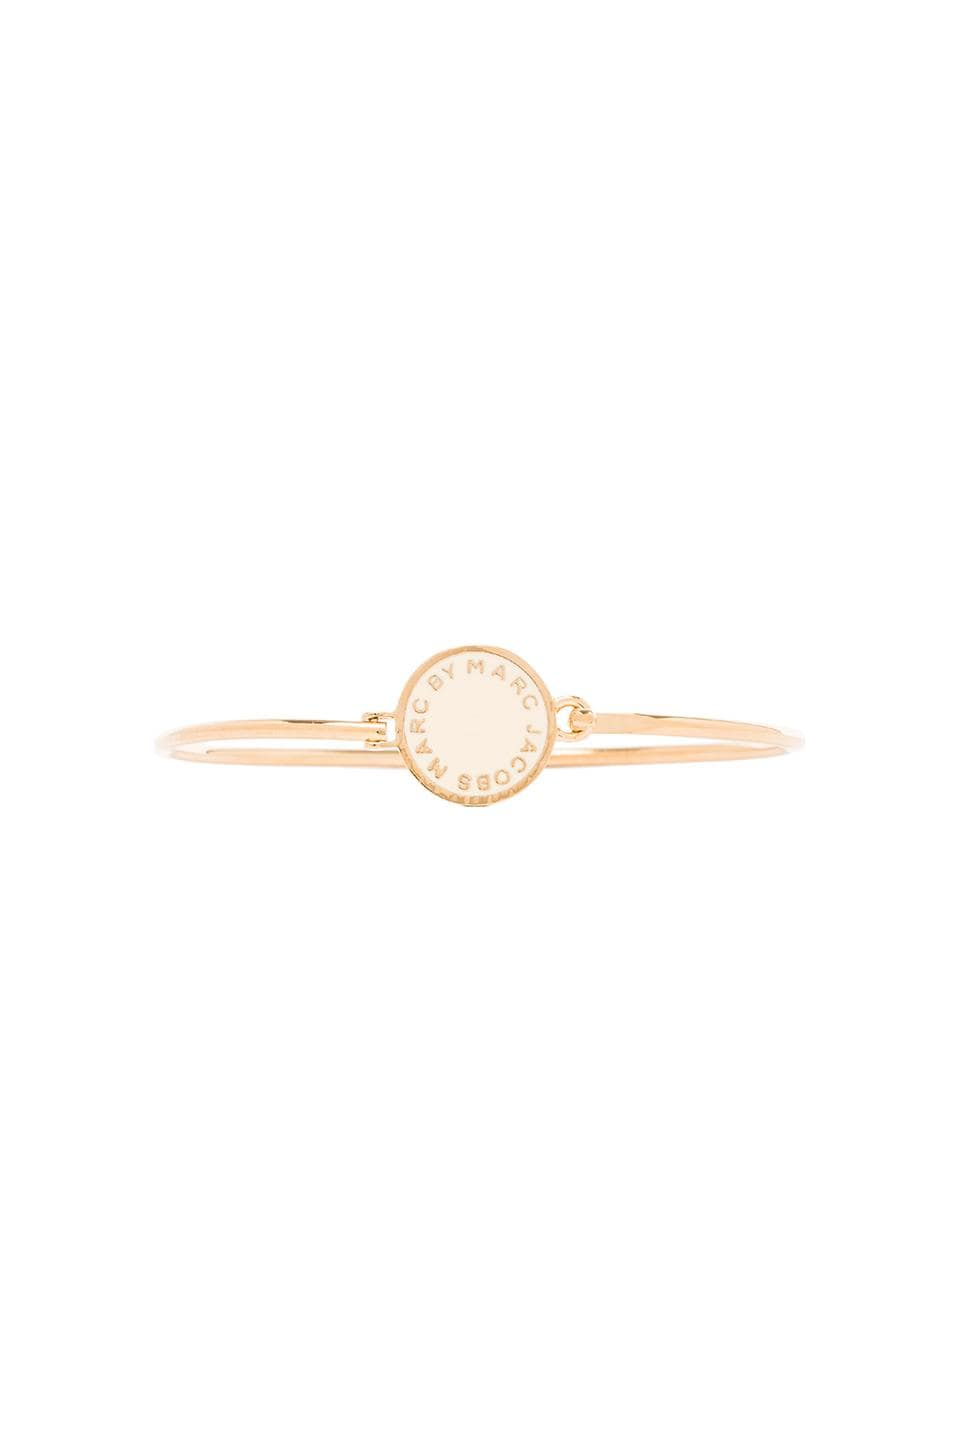 Marc by Marc Jacobs Skinny Bracelet in Cream